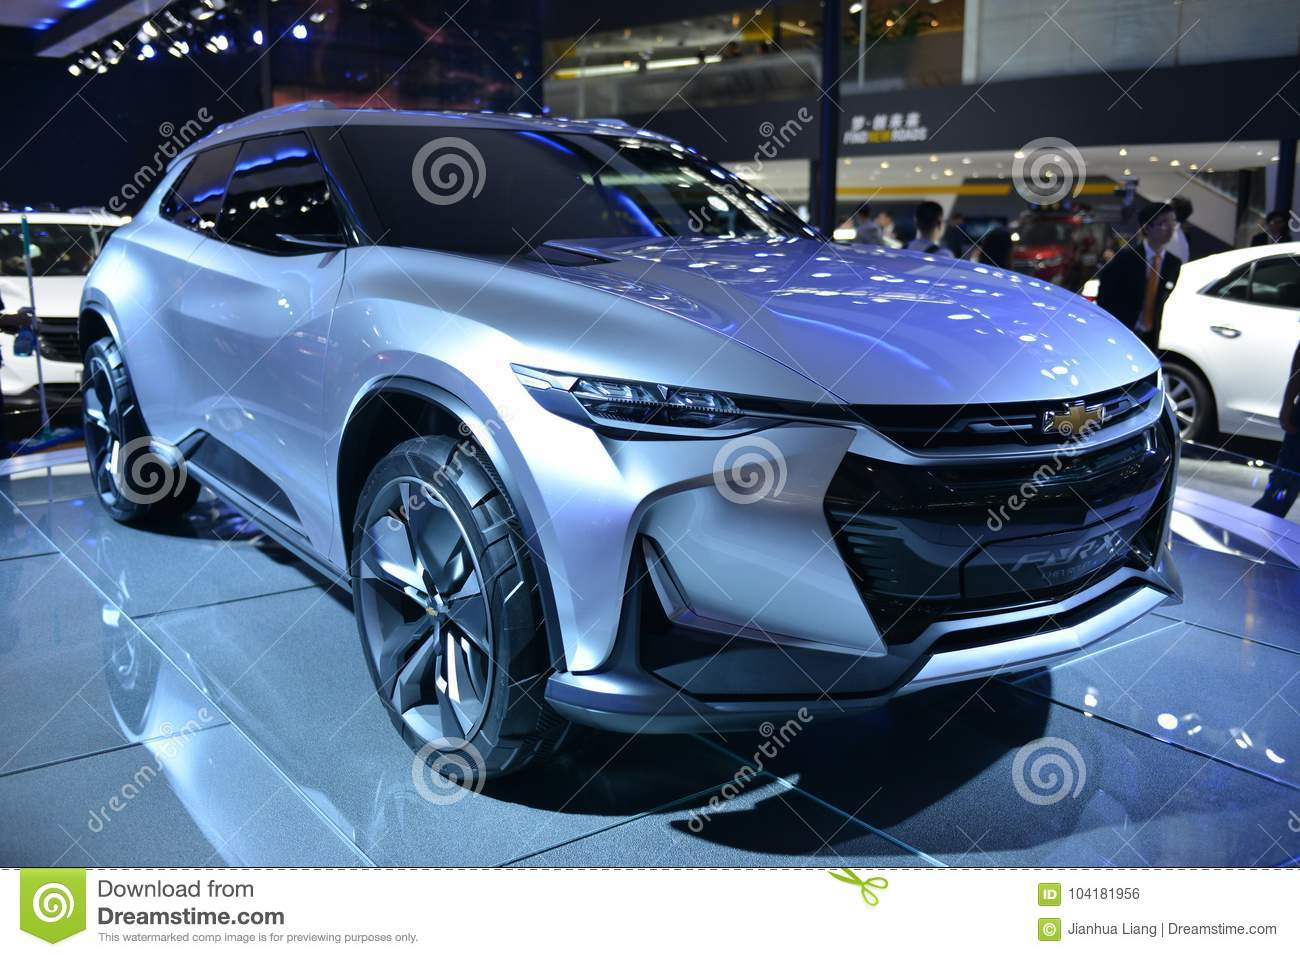 Chevrolet Fnr X All Purpose Sports Concept Vehicle Editorial Photo